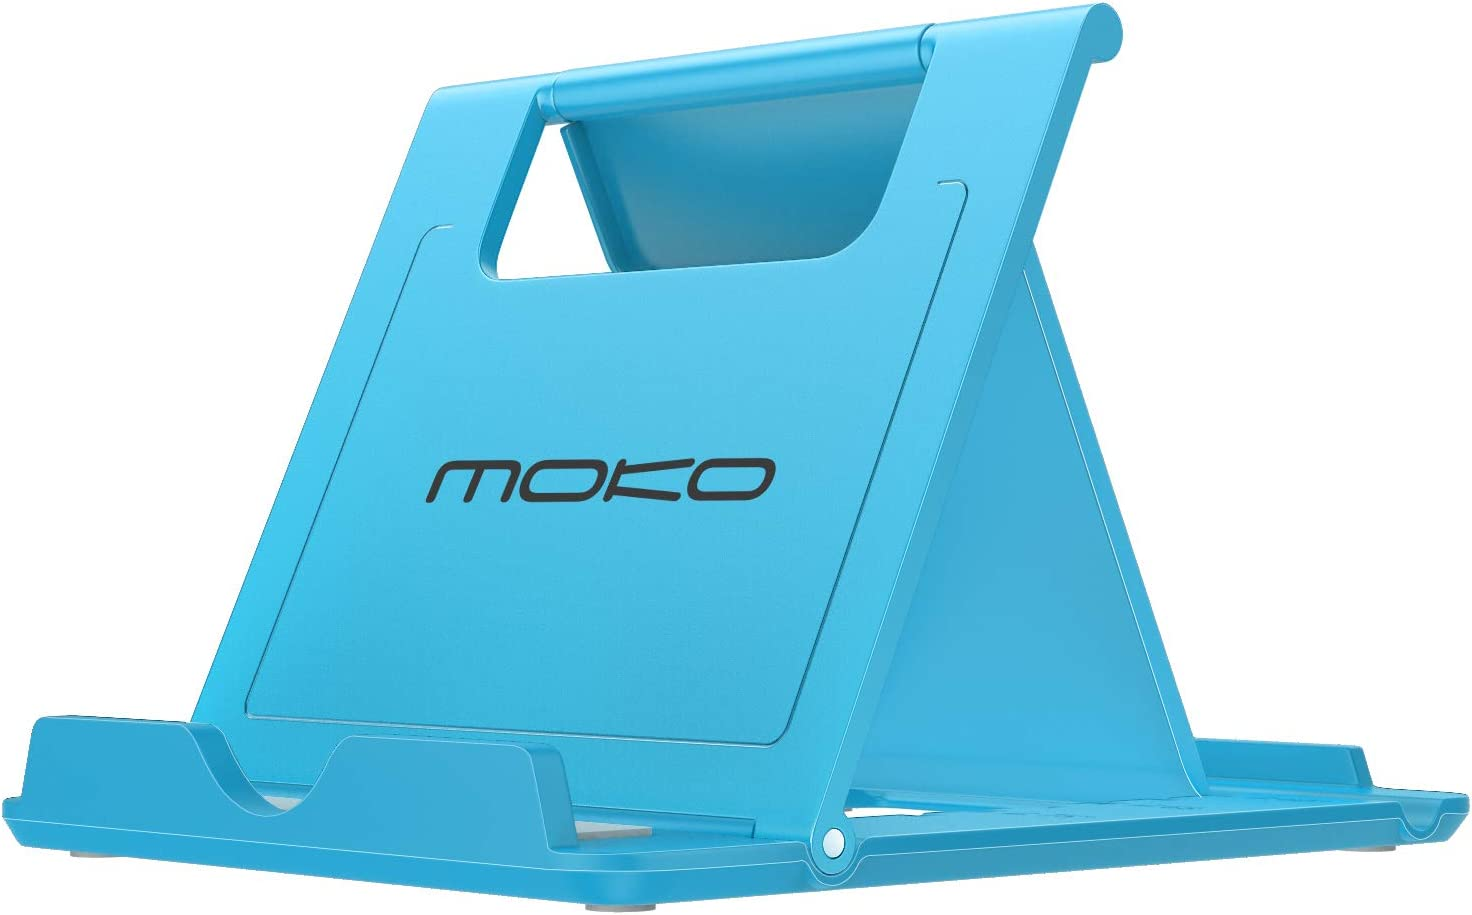 MoKo Phone/Tablet Stand, Foldable Desktop Holder Fit with iPhone 11 Pro Max/11 Pro/11, iPhone Xs/Xs Max/Xr/X, iPhone SE 2020, iPad Pro 11 2020/10.2/Air 3/Mini 5, Galaxy S20 6.2